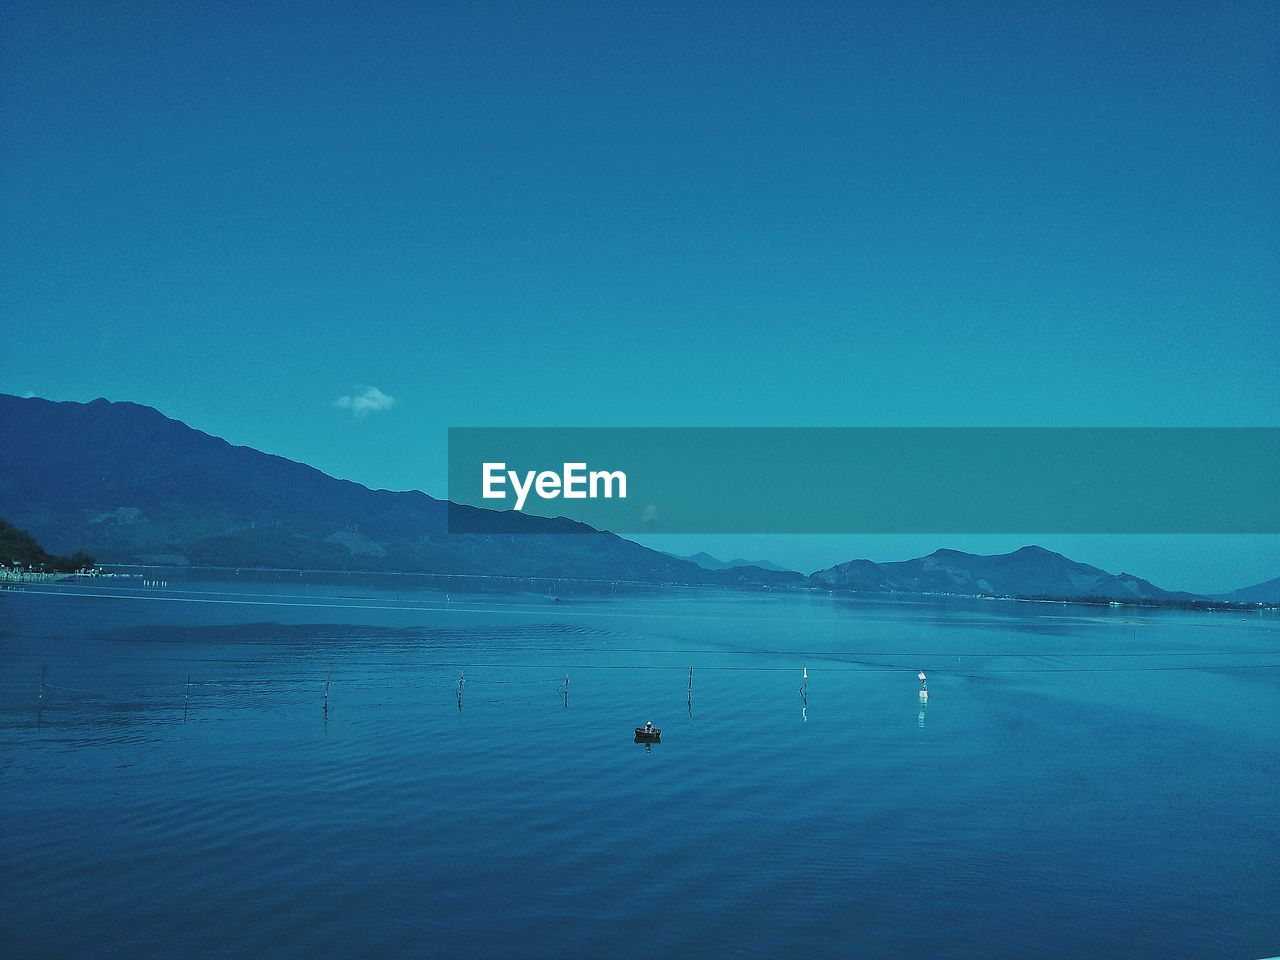 water, sky, mountain, scenics - nature, beauty in nature, blue, sea, waterfront, copy space, tranquil scene, tranquility, clear sky, nature, mountain range, nautical vessel, idyllic, non-urban scene, day, transportation, no people, outdoors